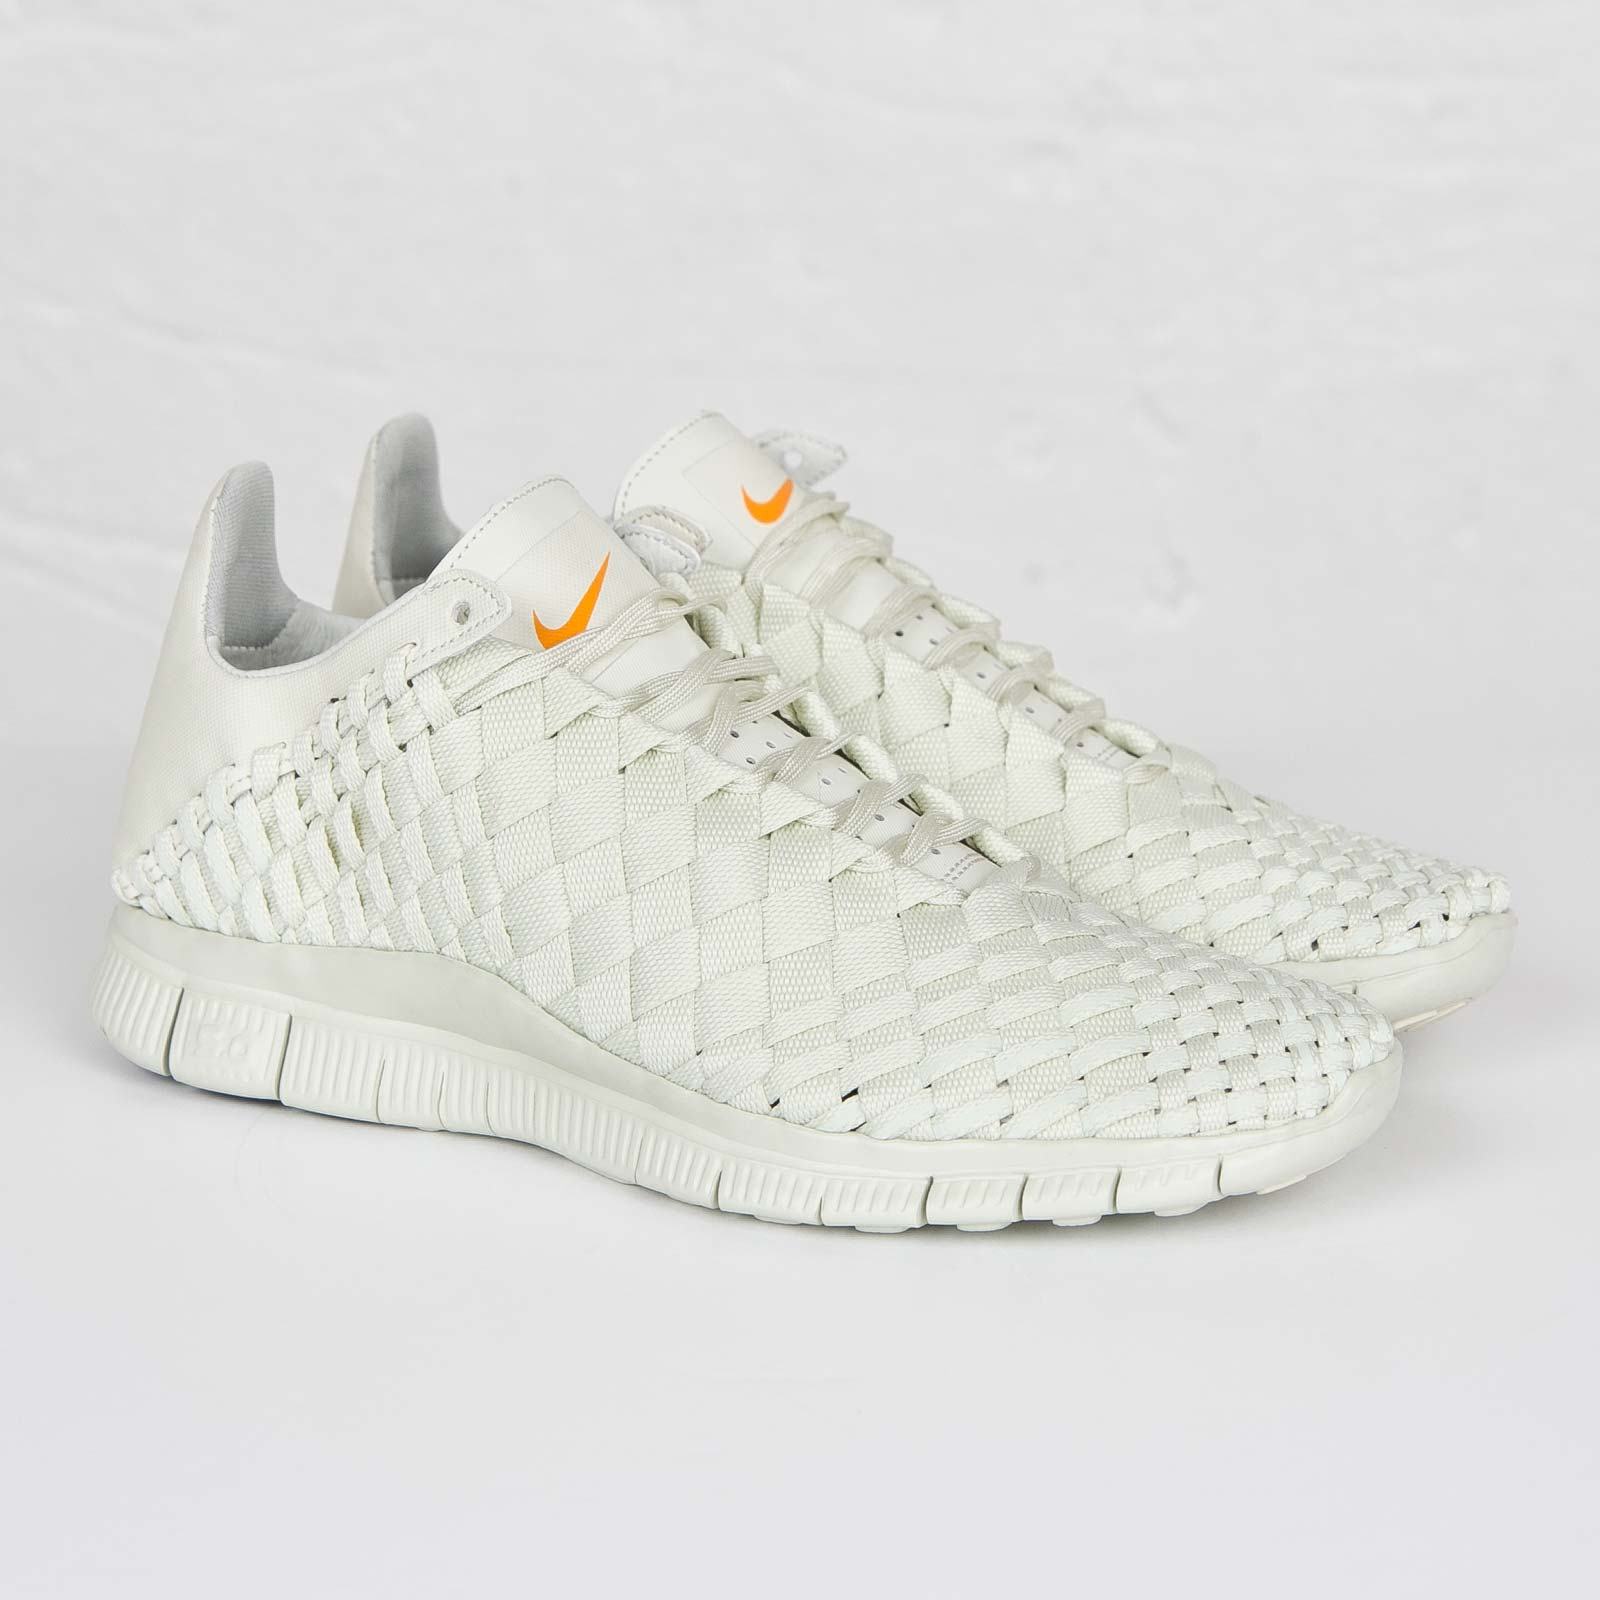 official photos 744e5 3b6ab Nike Free Inneva Woven Tech SP